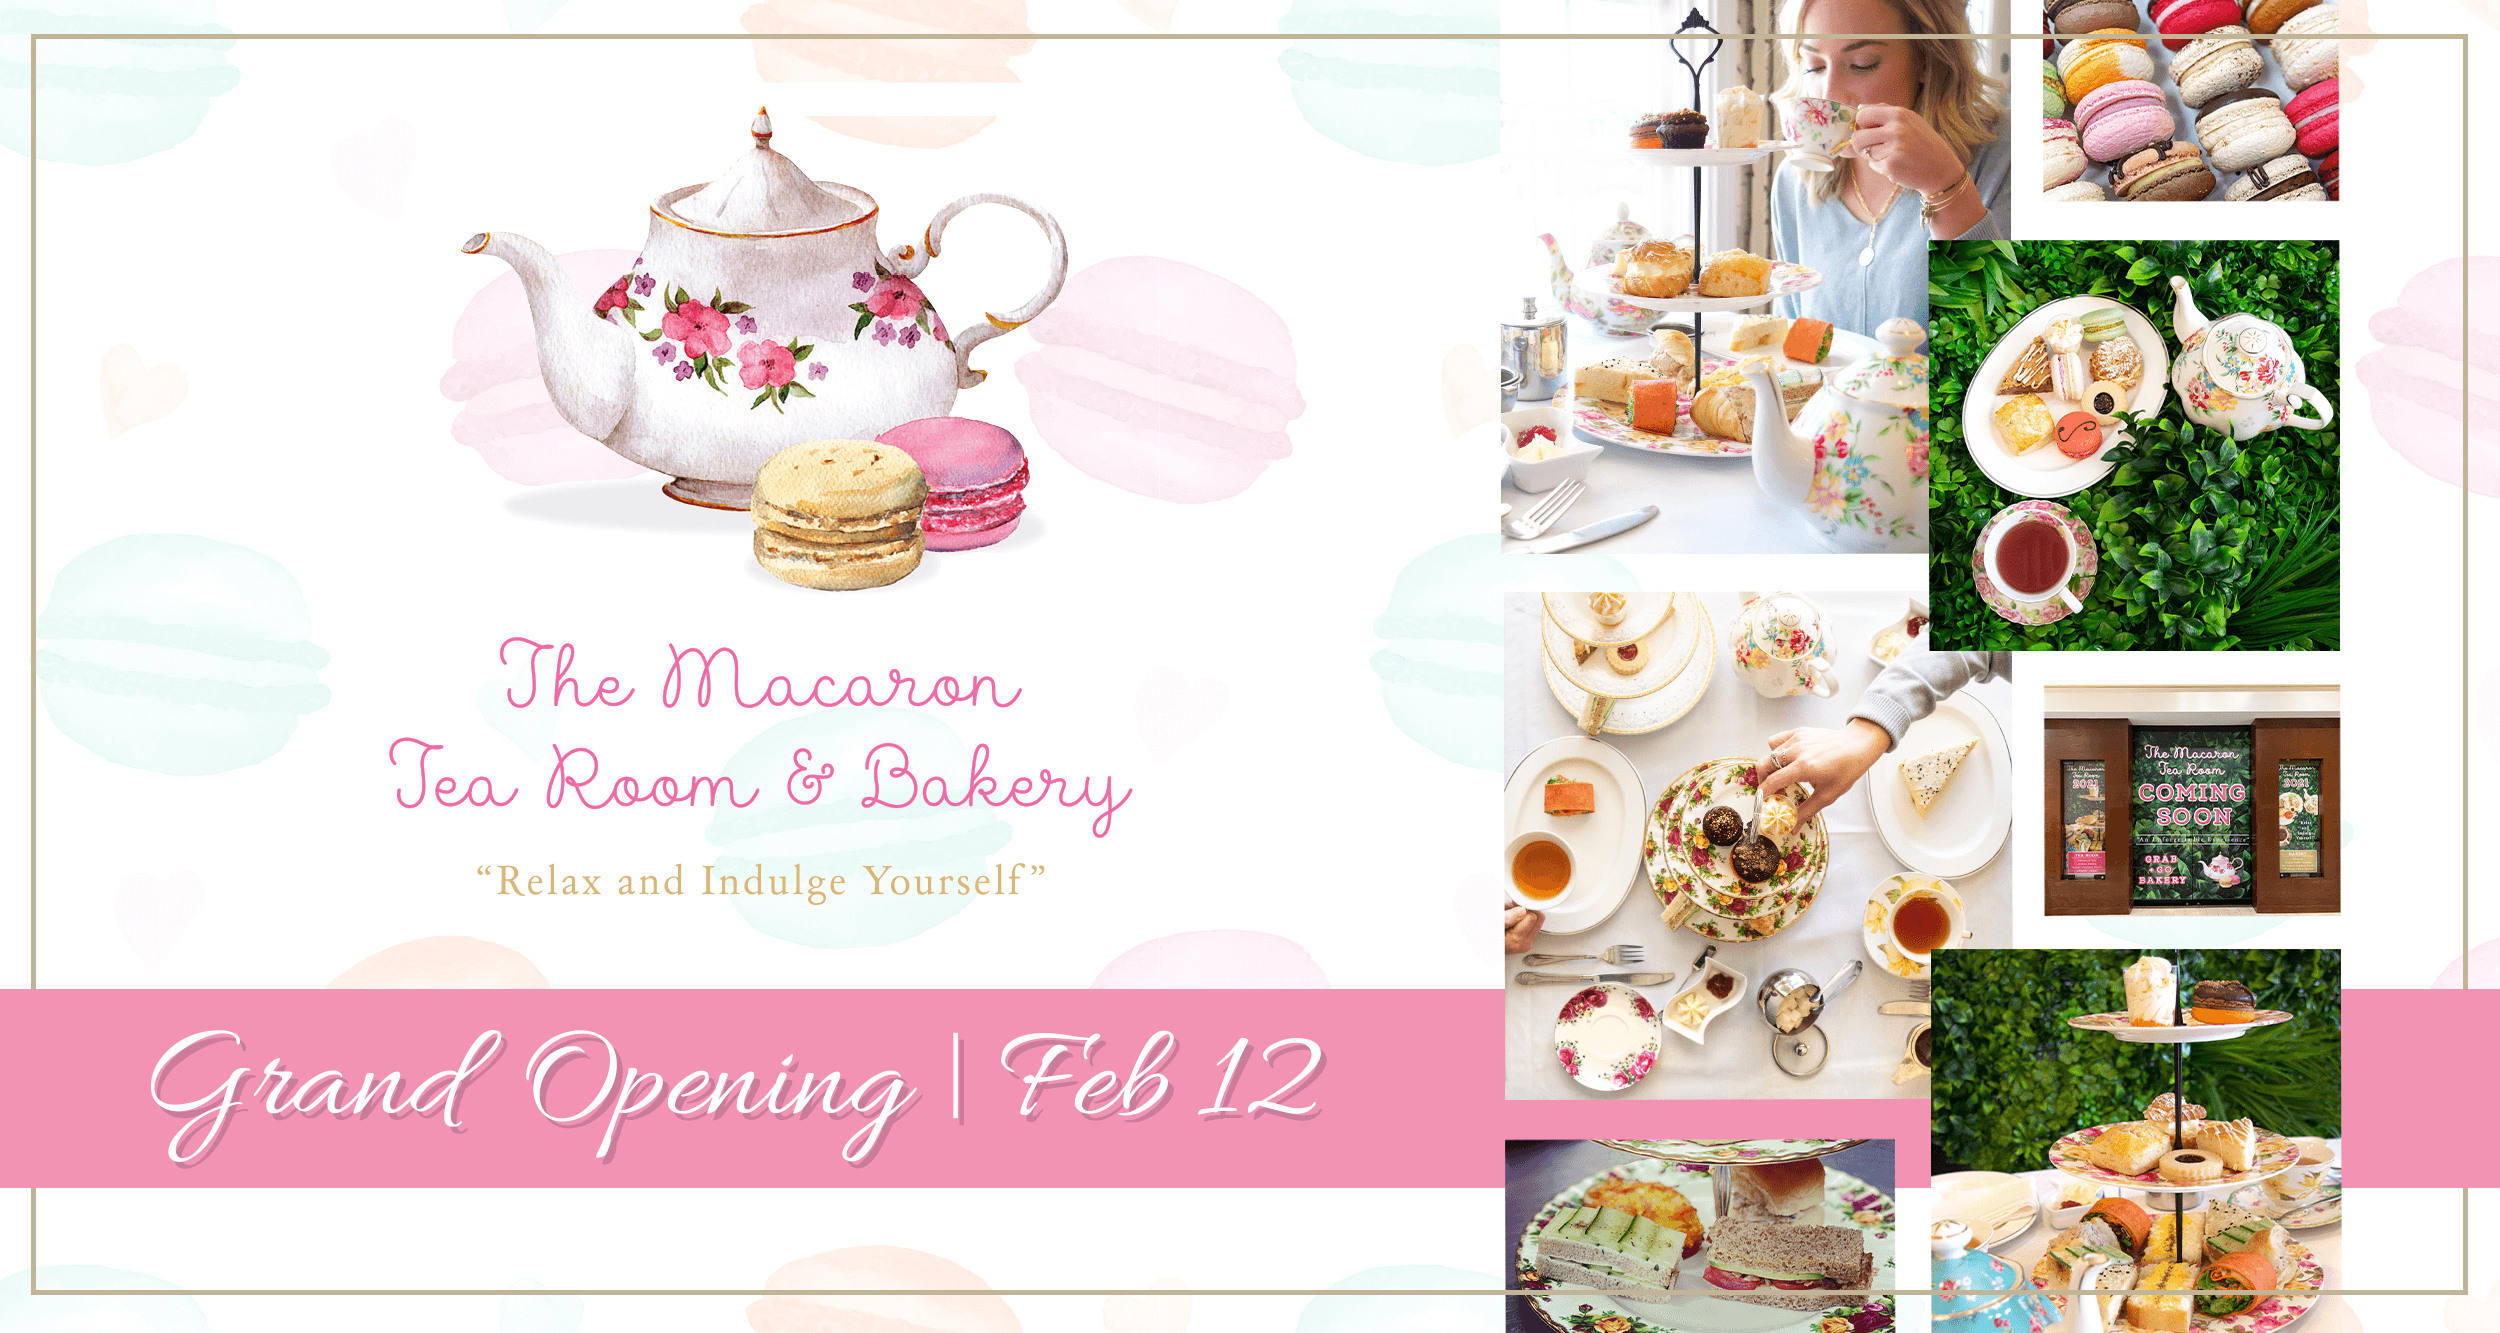 The Macaron Tea Room Grand Opening